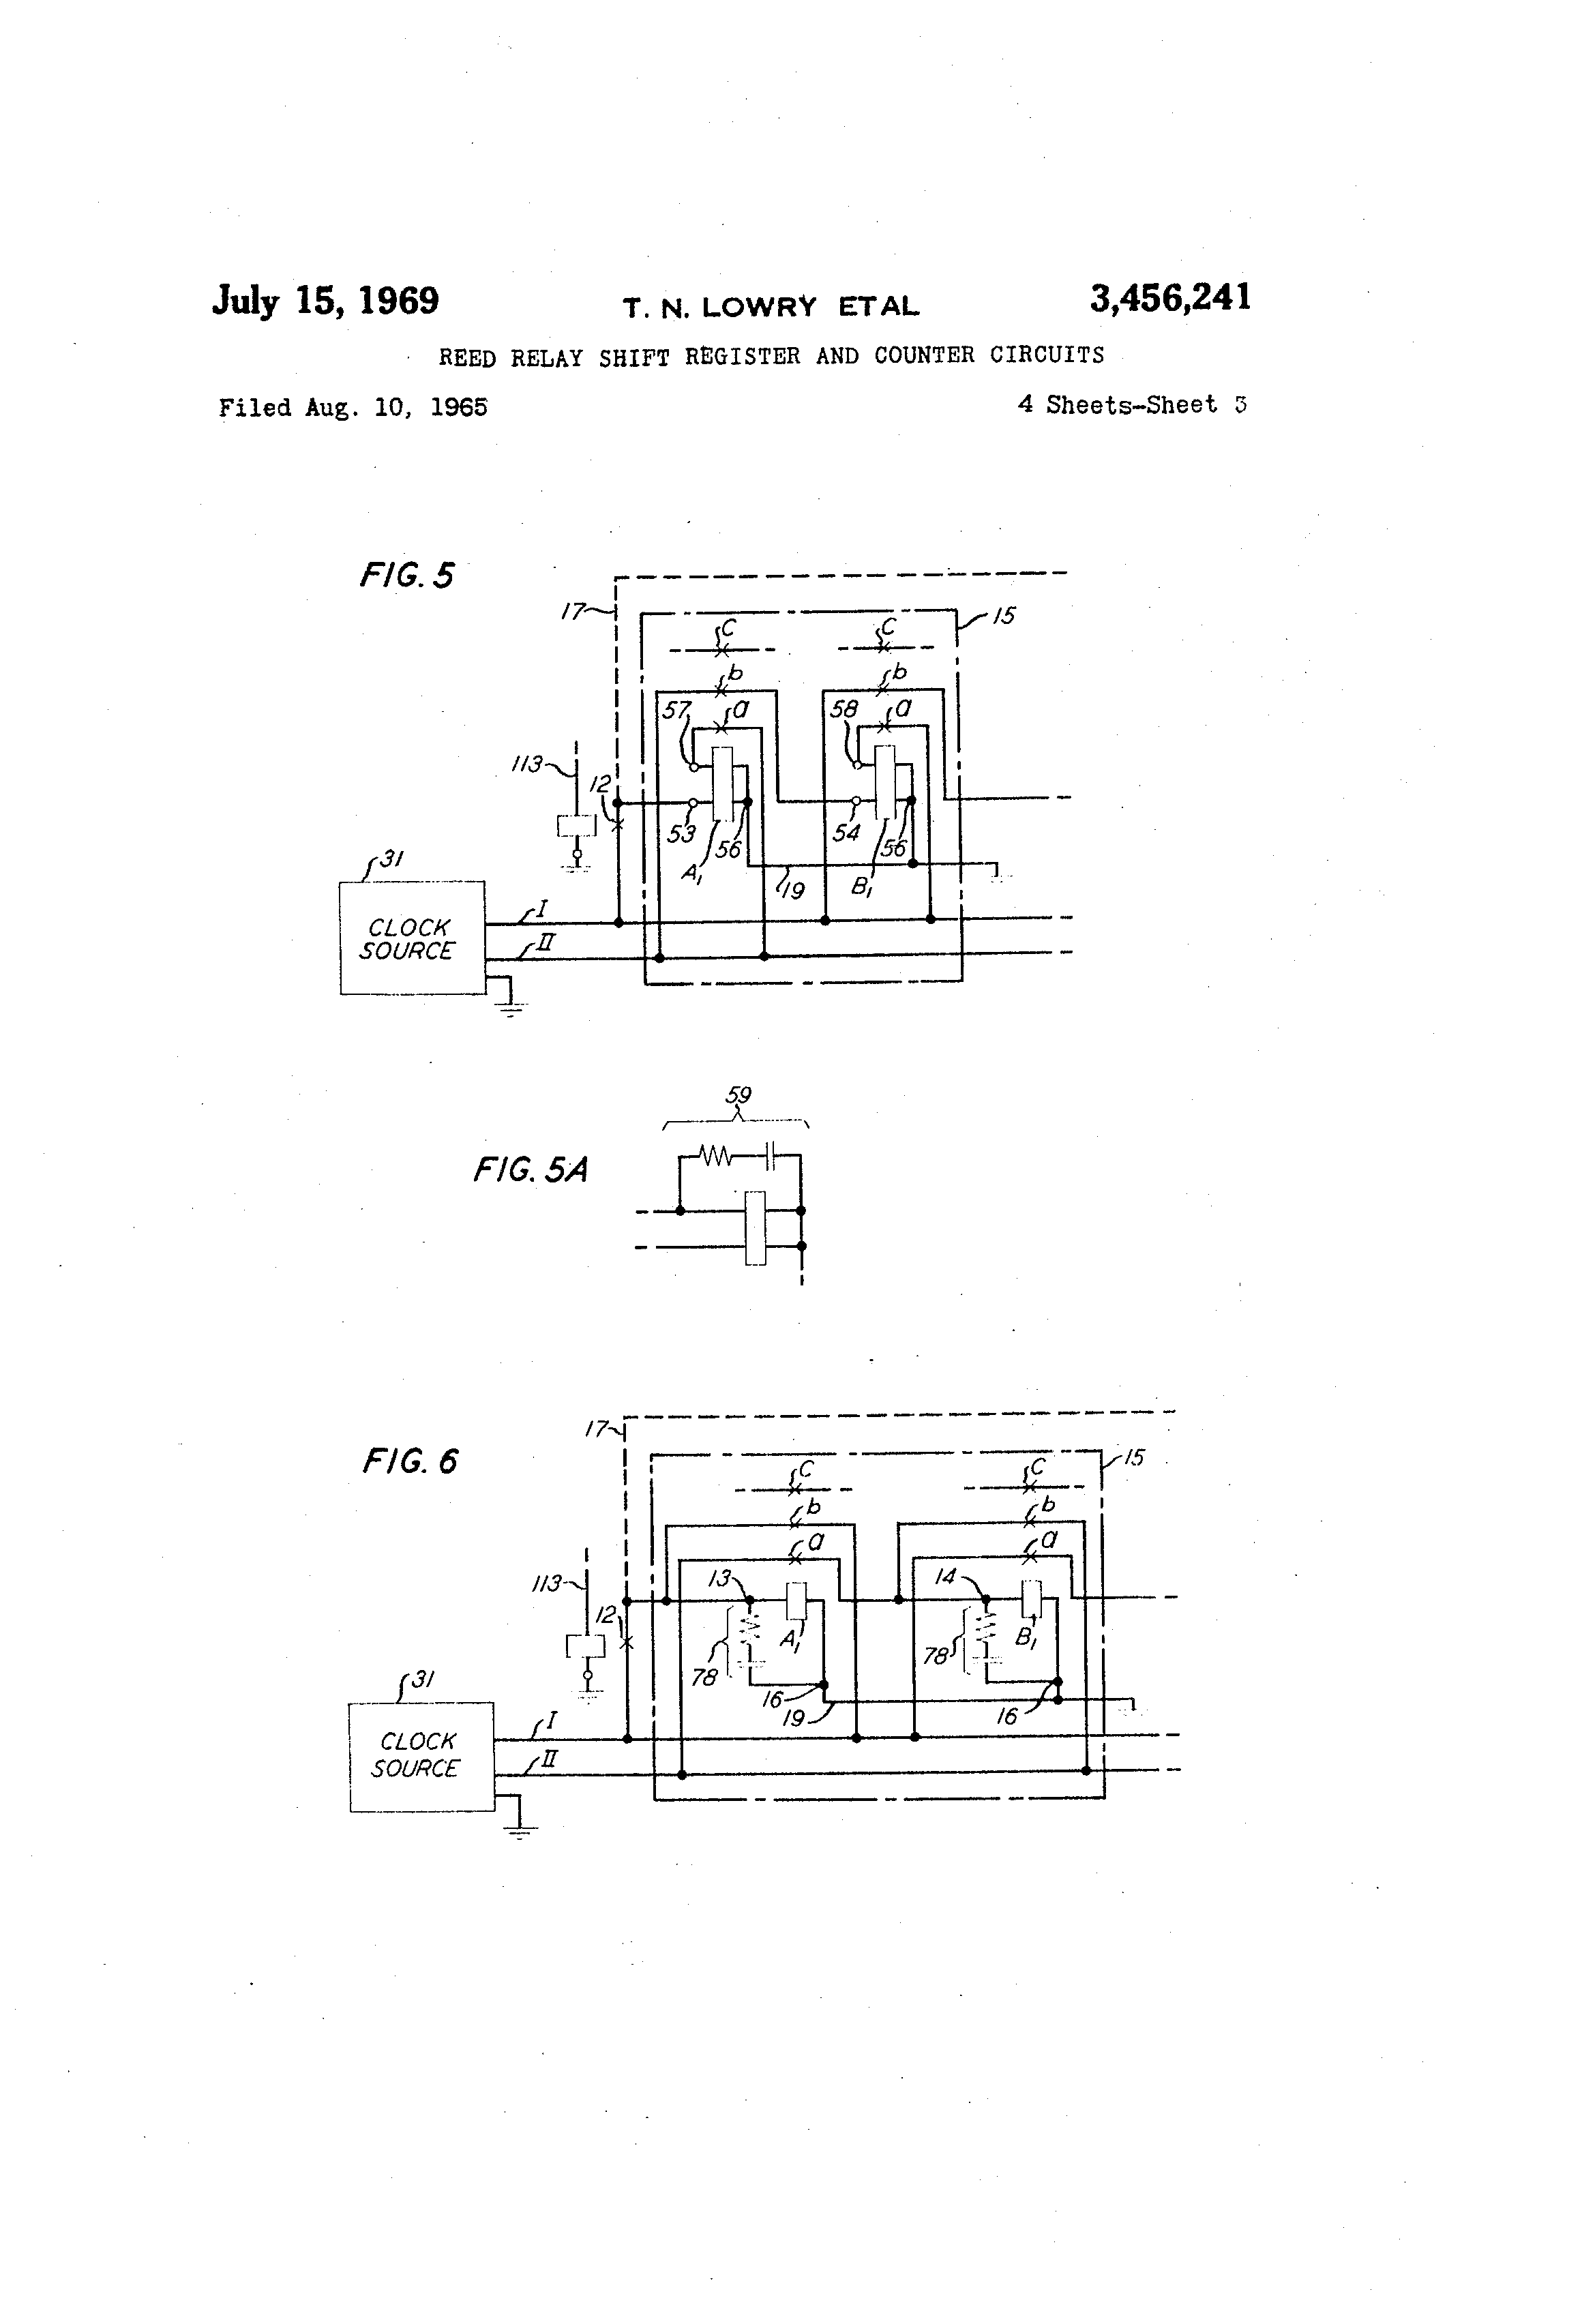 Patent US Reed Relay Shift Register And Counter Circuits - Two coil latching relay